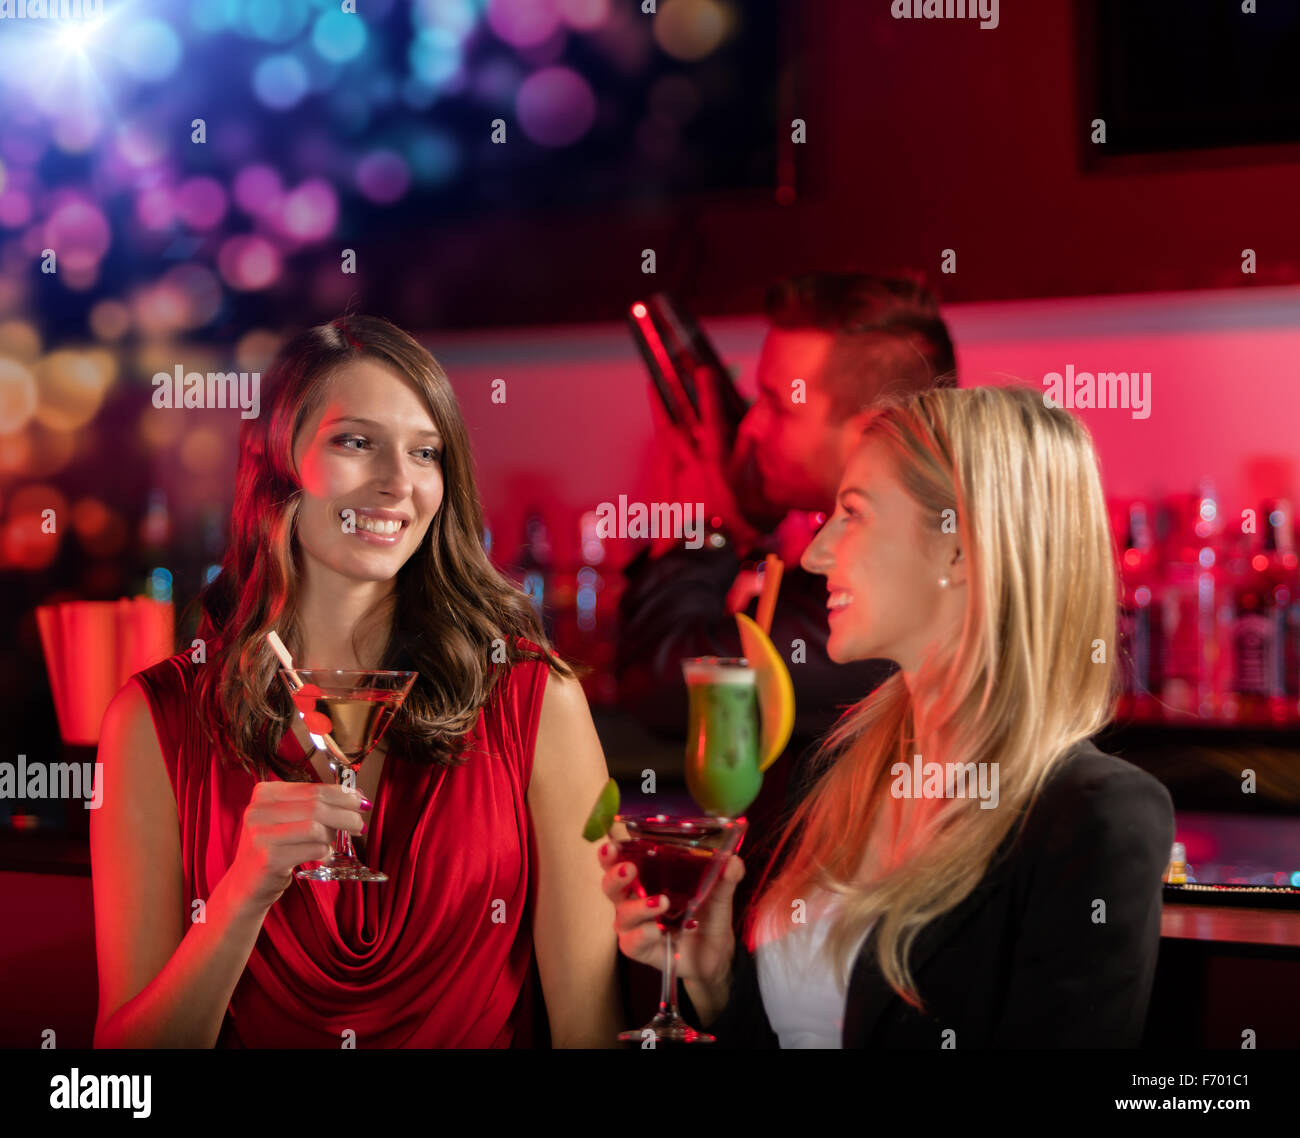 Two girls at the bar with cocktail drink - Stock Image